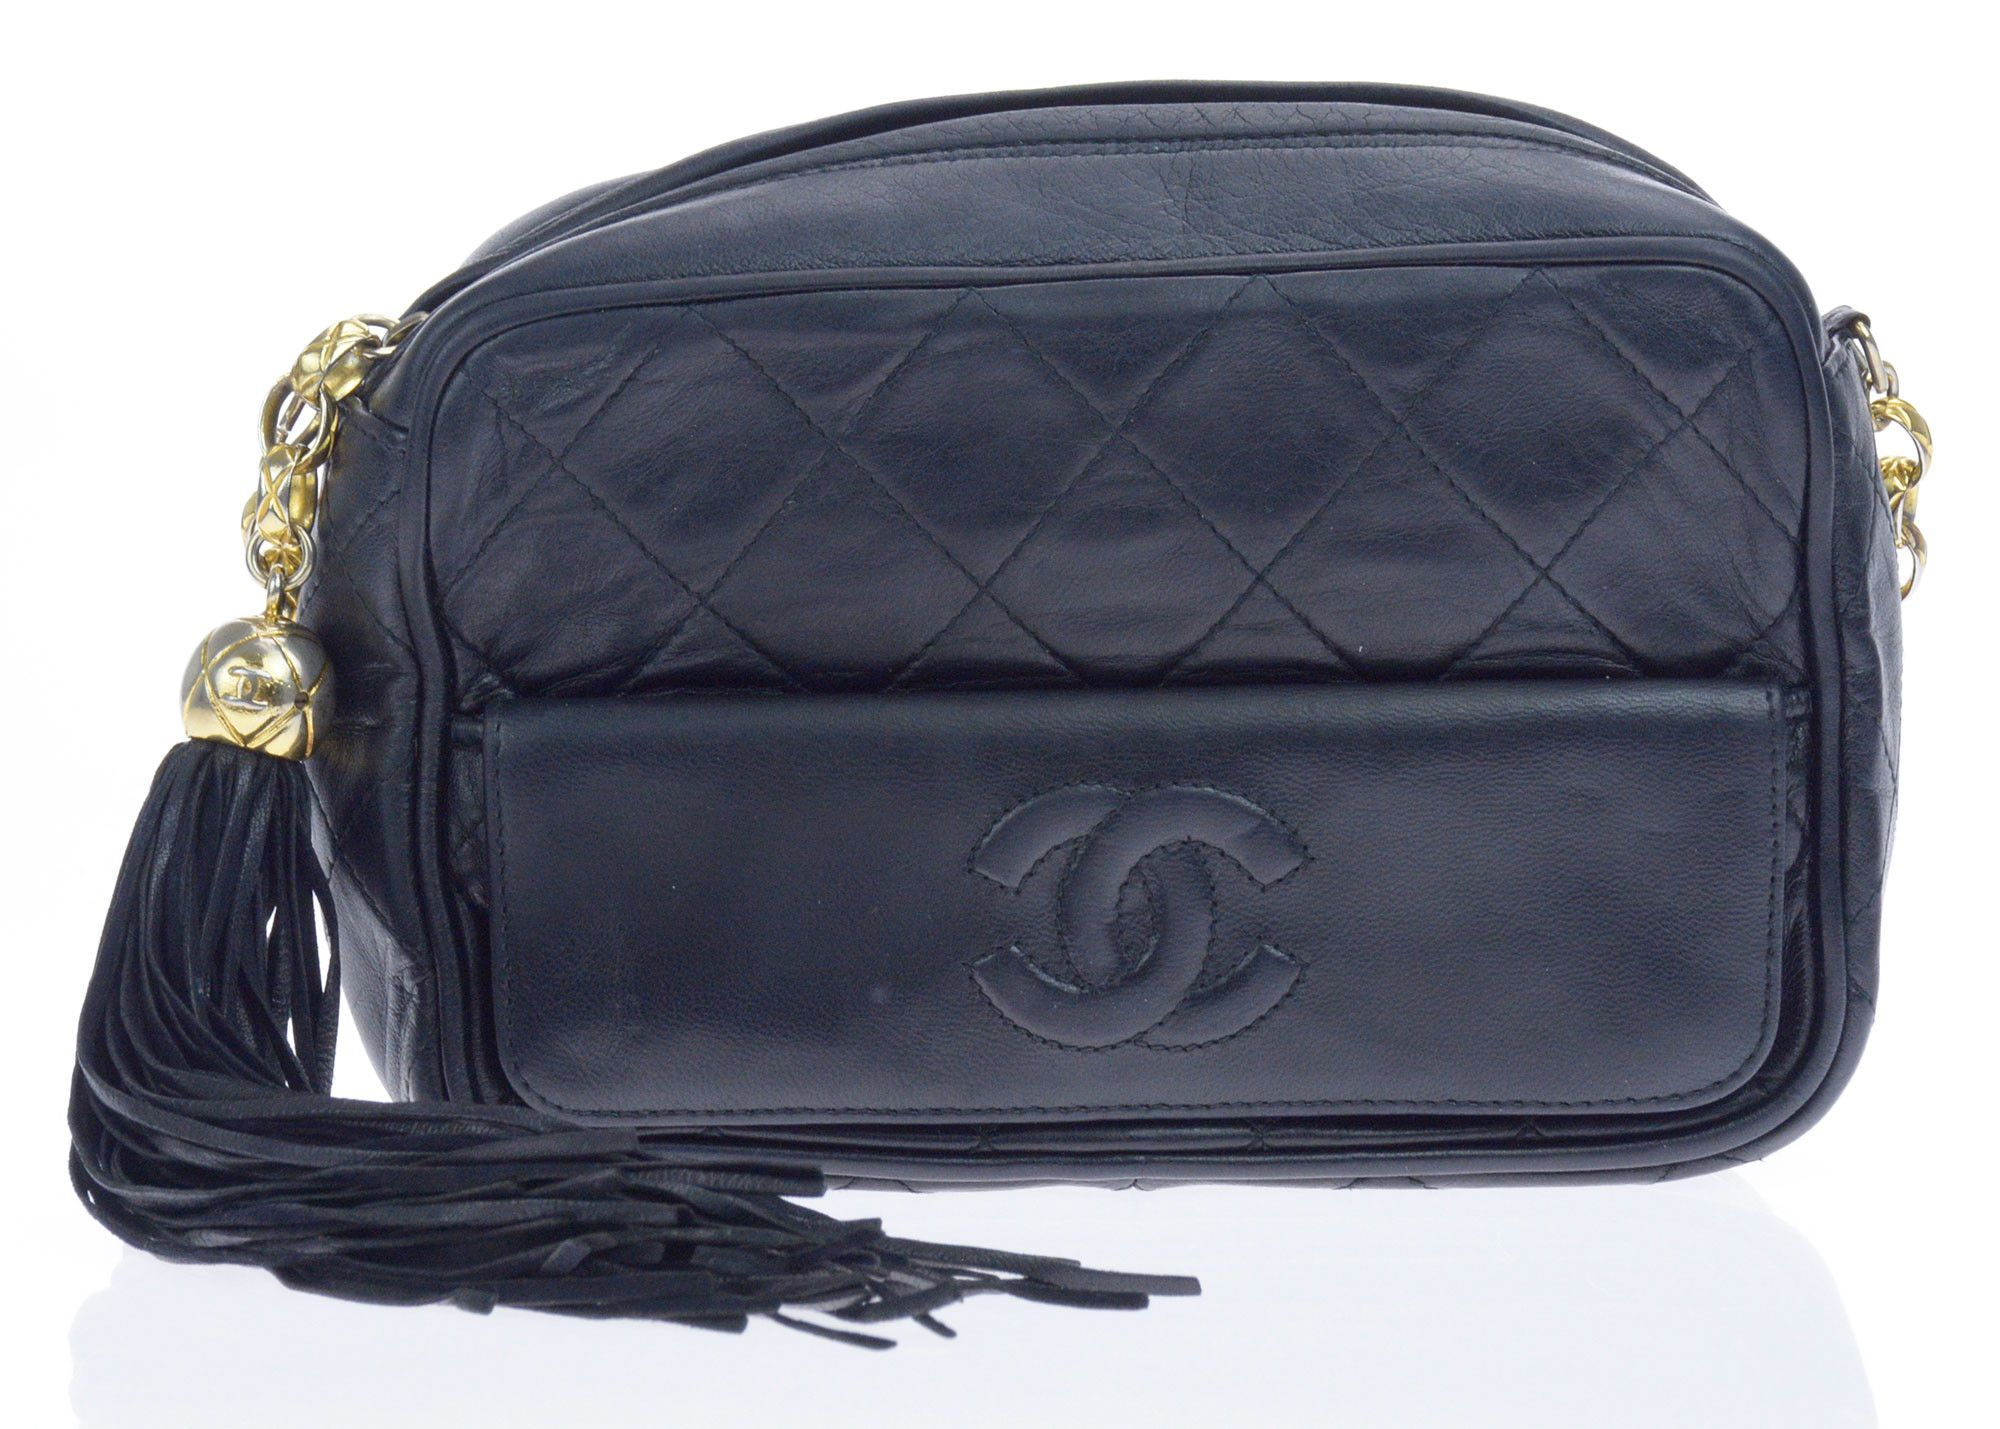 03b0ee5769b0 Chanel Black Vintage Lambskin Leather Small Camera Bag | Christmas ...